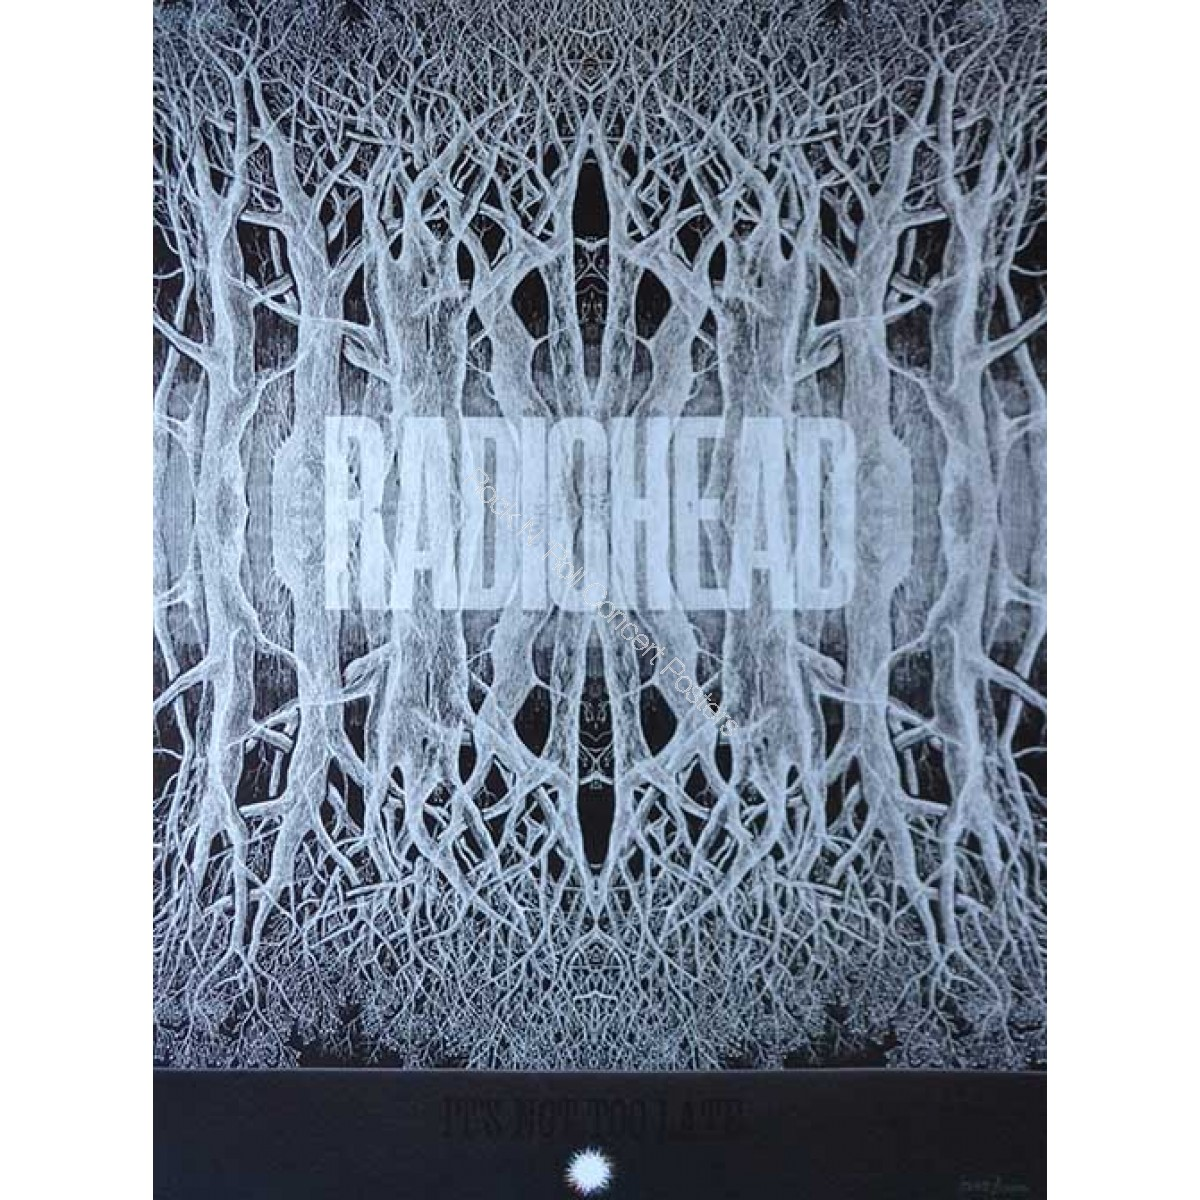 Radiohead King Of Limbs North American Tour 2012  Limited Edition Print Hand Numbered Edition